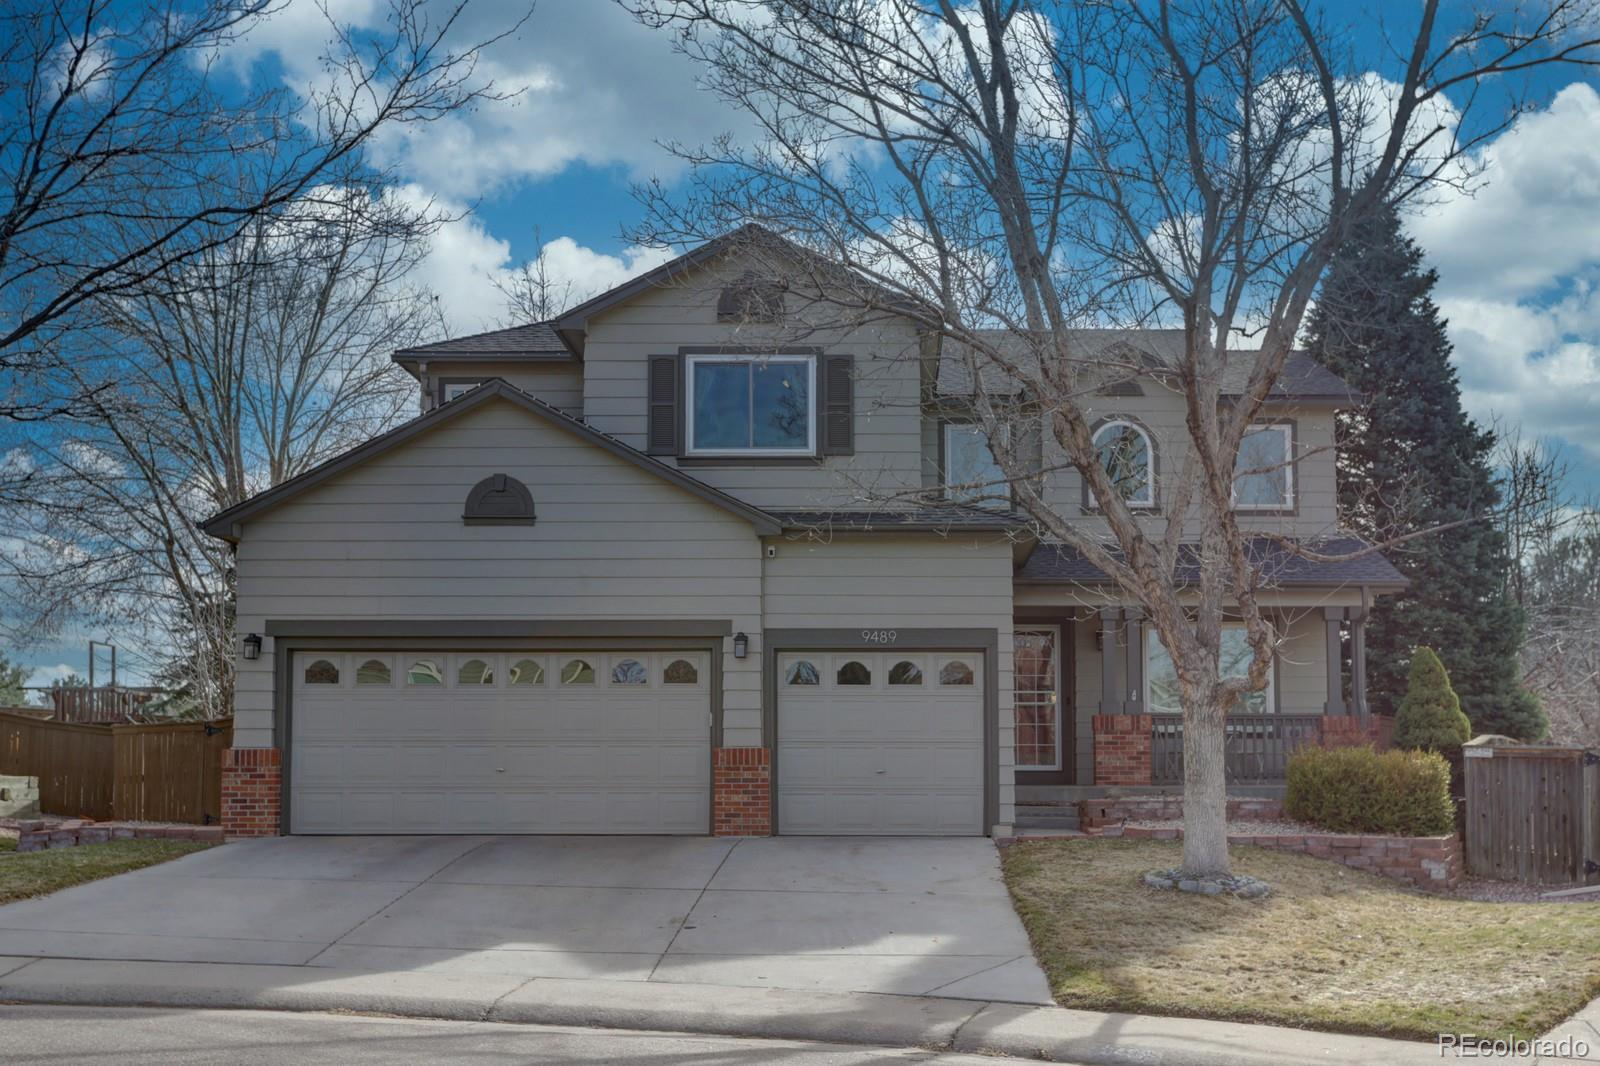 MLS# 3110413 - 1 - 9489 Wolfe Court, Highlands Ranch, CO 80129